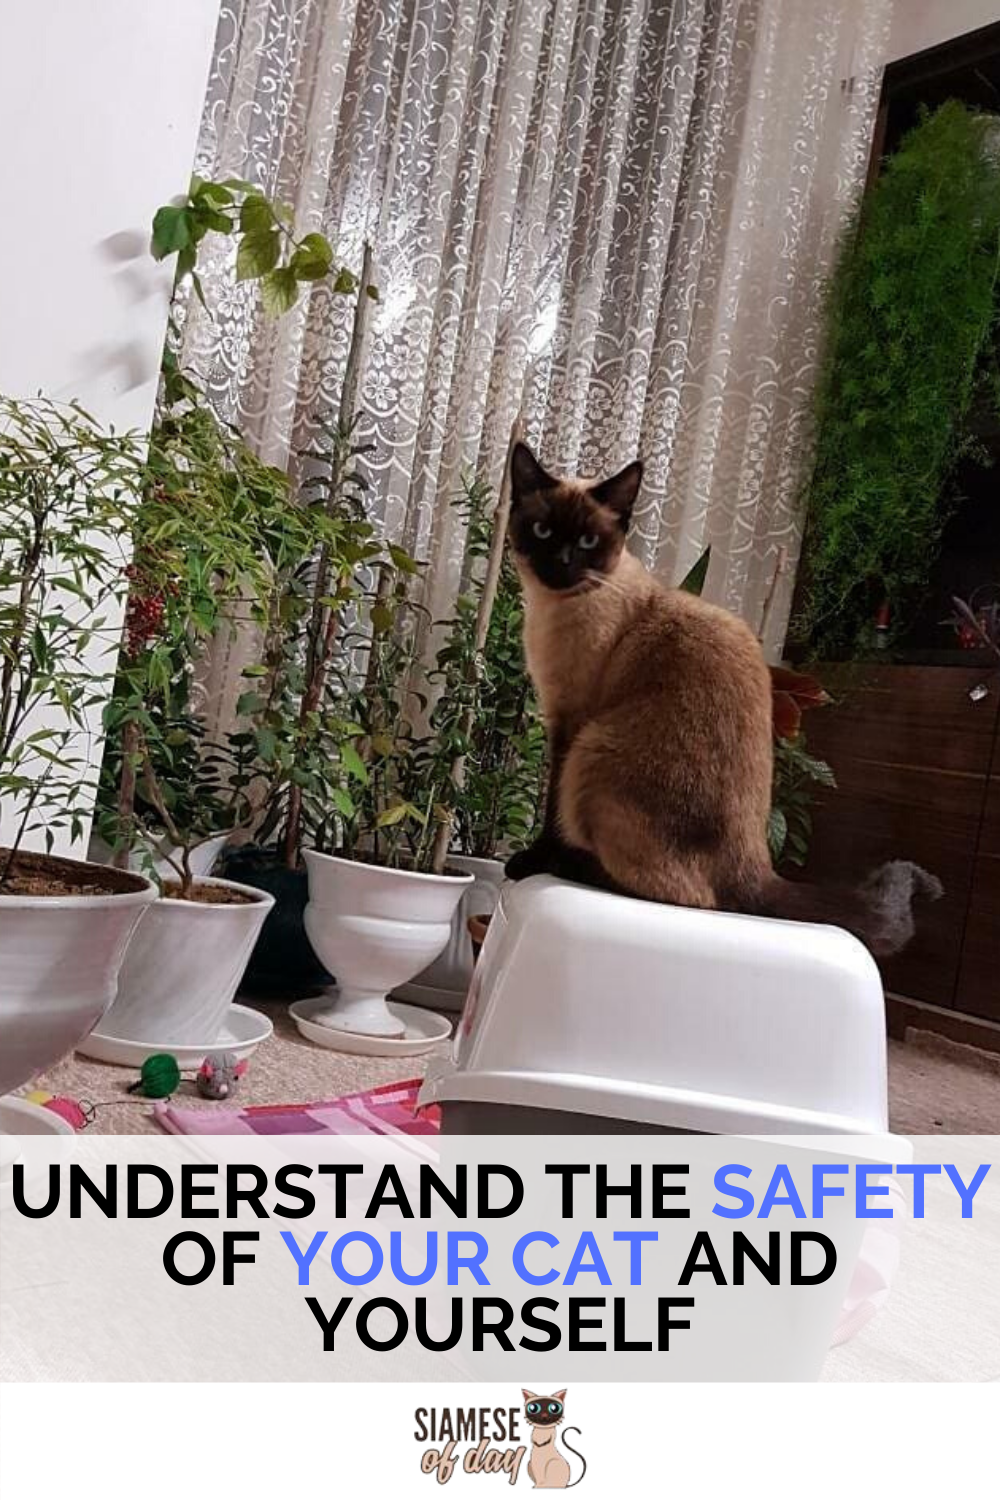 How To Calm A Nervous Cat Kitty Siamese Of Cat In 2020 Cat Behavior Cat Training Tricks Cat Safety